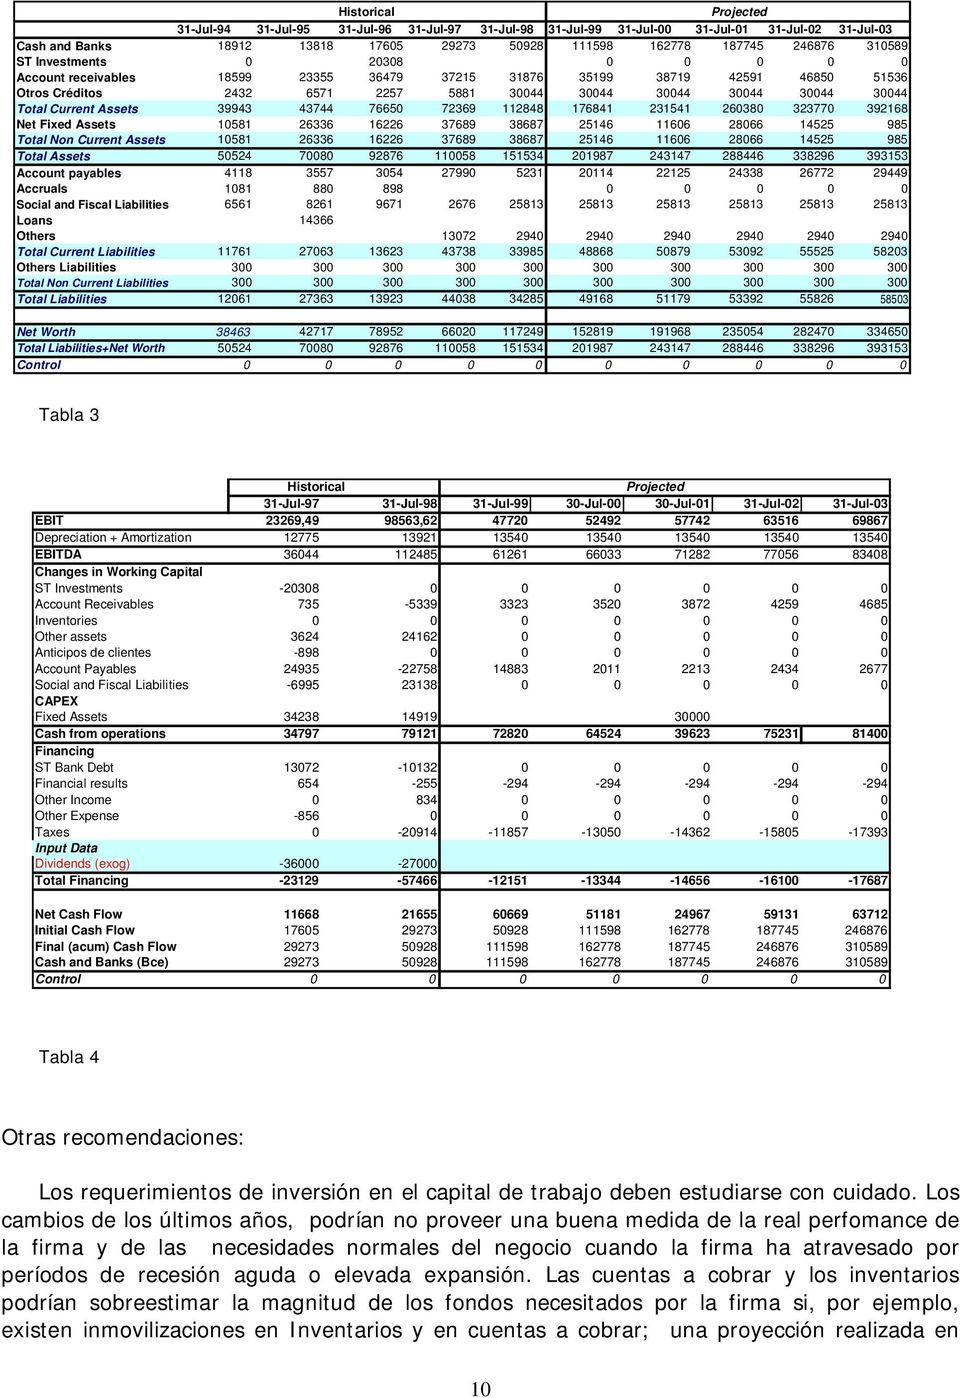 Current Assets 39943 43744 76650 72369 112848 176841 231541 260380 323770 392168 Net Fixed Assets 10581 26336 16226 37689 38687 25146 11606 28066 14525 985 Total Non Current Assets 10581 26336 16226